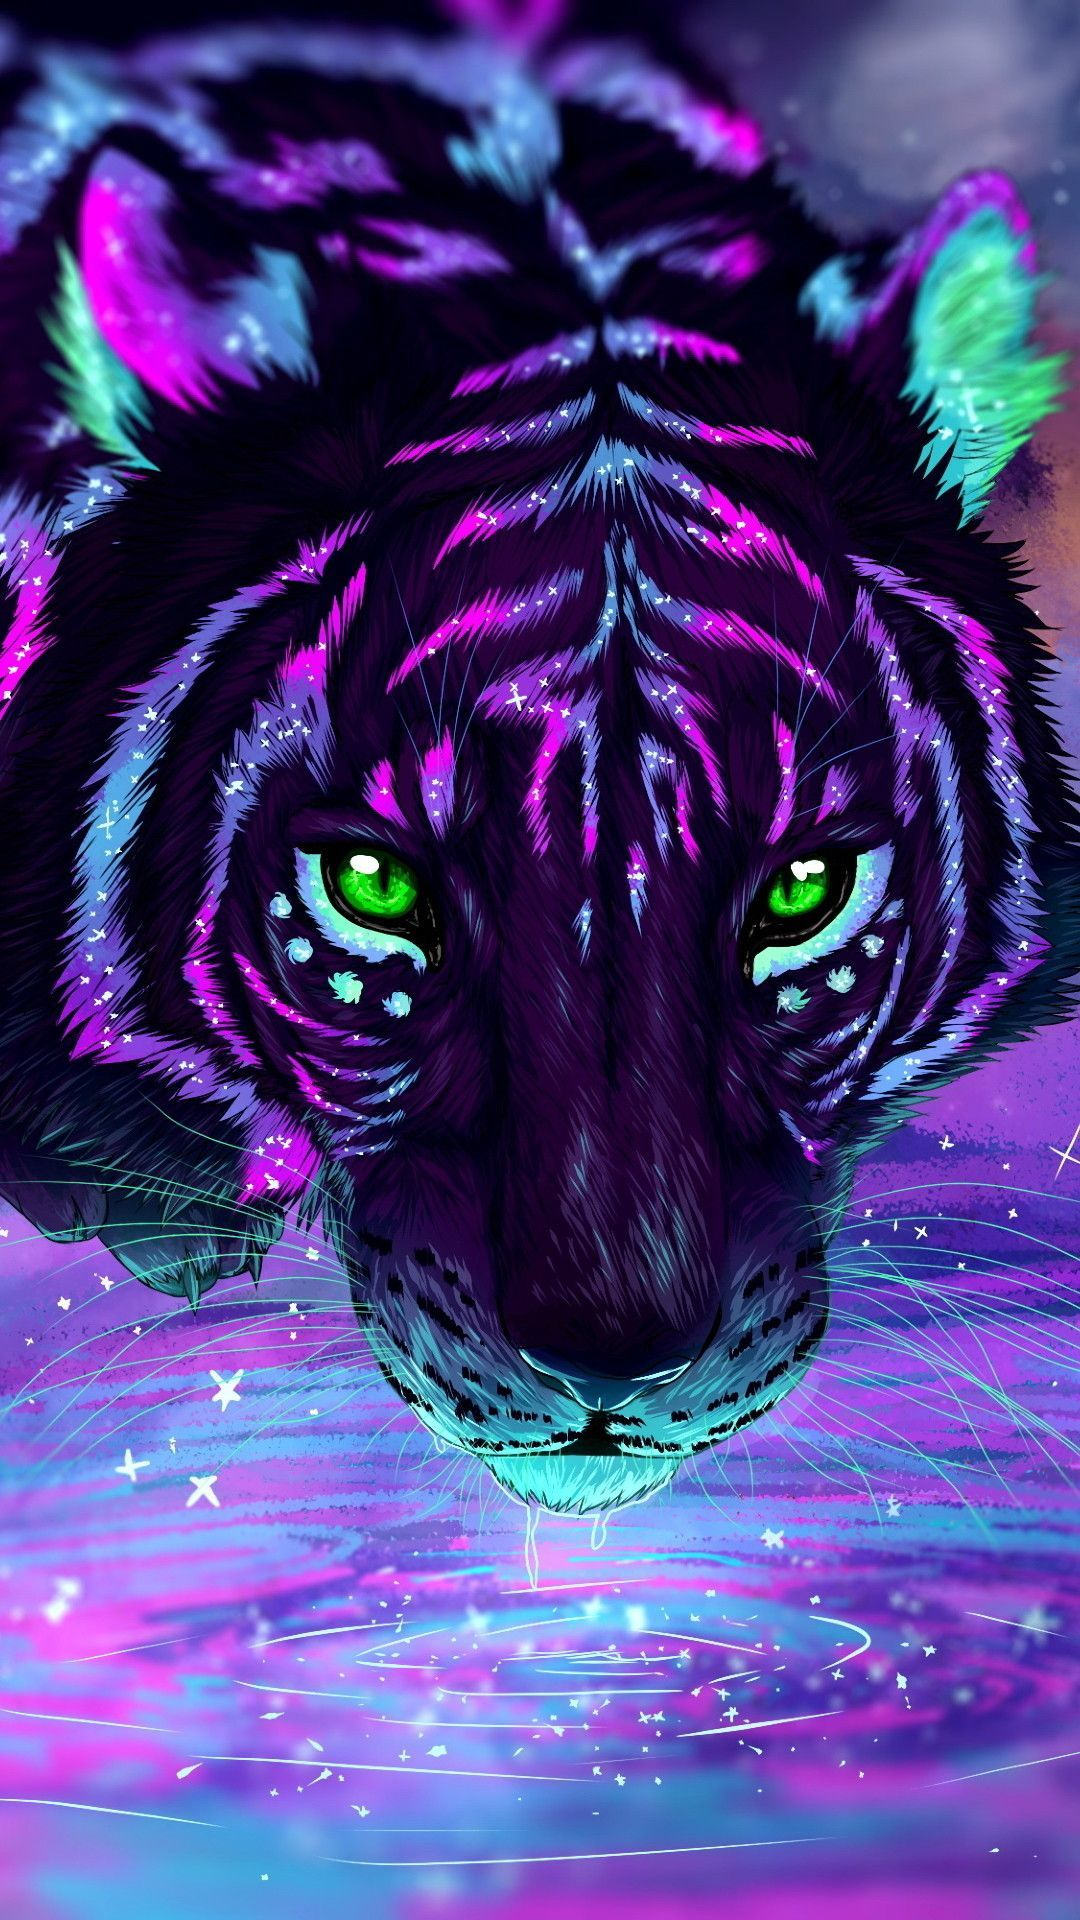 13285 3d Abstract Images Hd Photos 1080p Wallpapers Android Iphone 2020 Tiger Artwork Tiger Painting Abstract Tiger Wallpaper